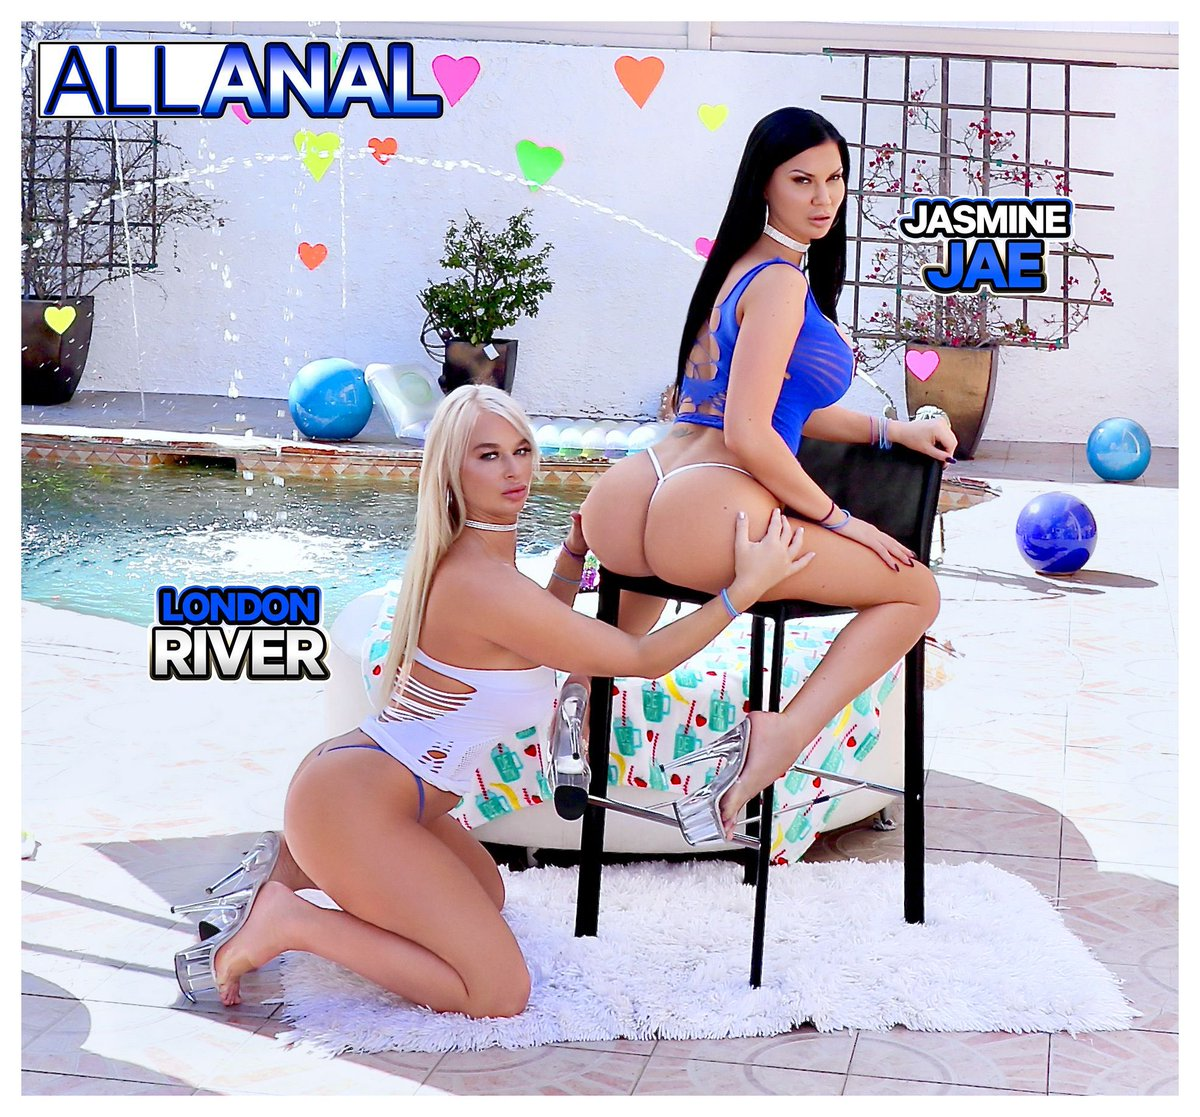 Check out my @AllAnal_com scene with #girlcrush @LondonCRiver 👯♀️ I feel like we do this blonde vs brunette thing SO well & hope we get to do it again soooooooooon 😛😋🥰😛😋😜